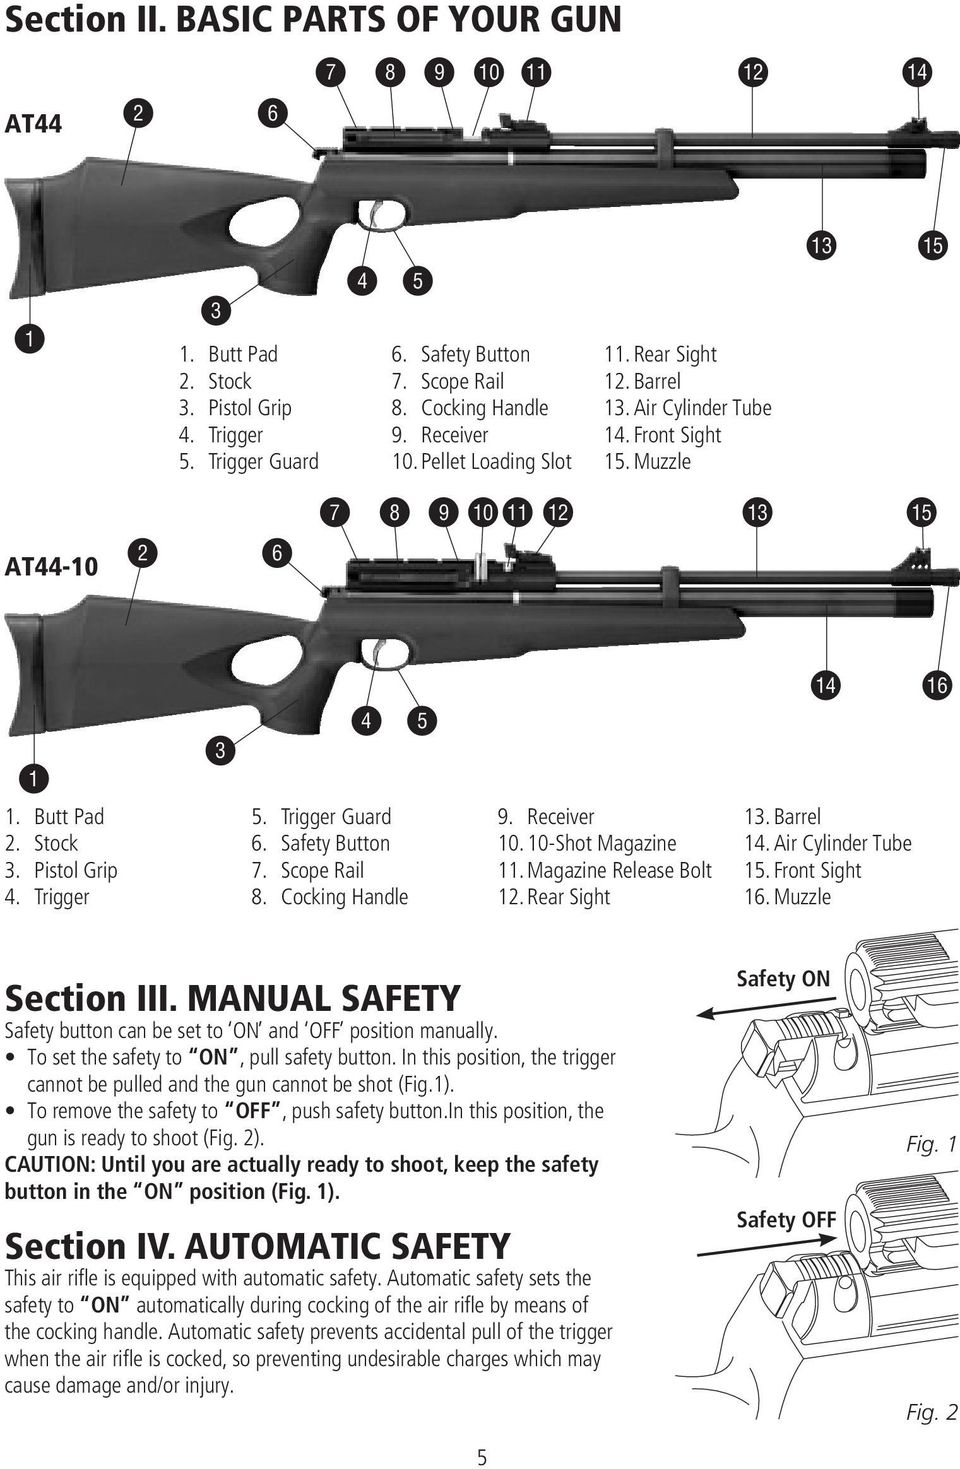 HATSAN ARMS COMPANY  AT44 & AT44-10 Series PCP Air Rifle INSTRUCTION